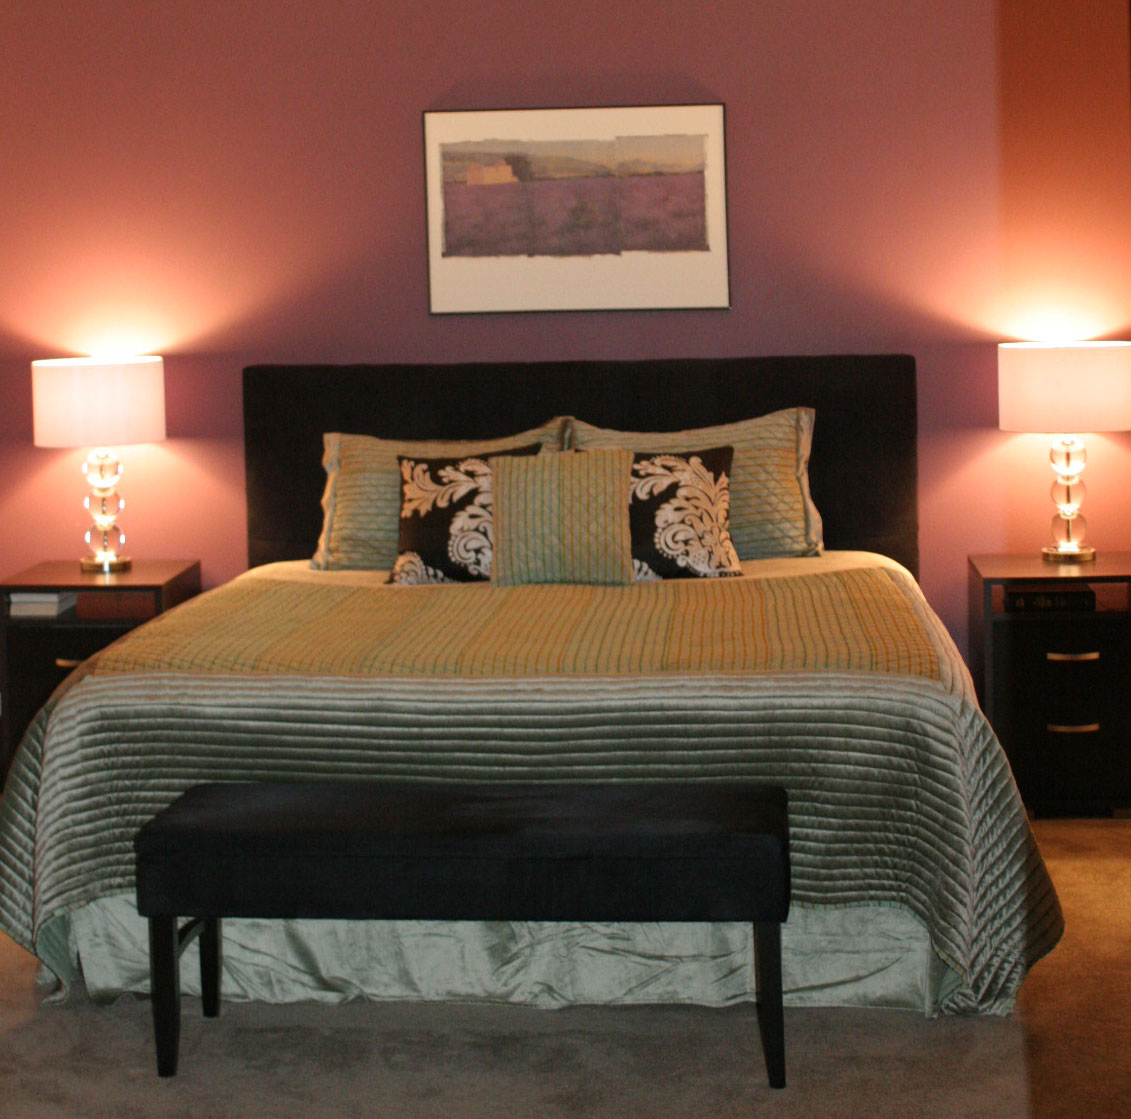 Plum Colors For Bedroom Walls Diana Hathaway Timmons Contemporary In Plum